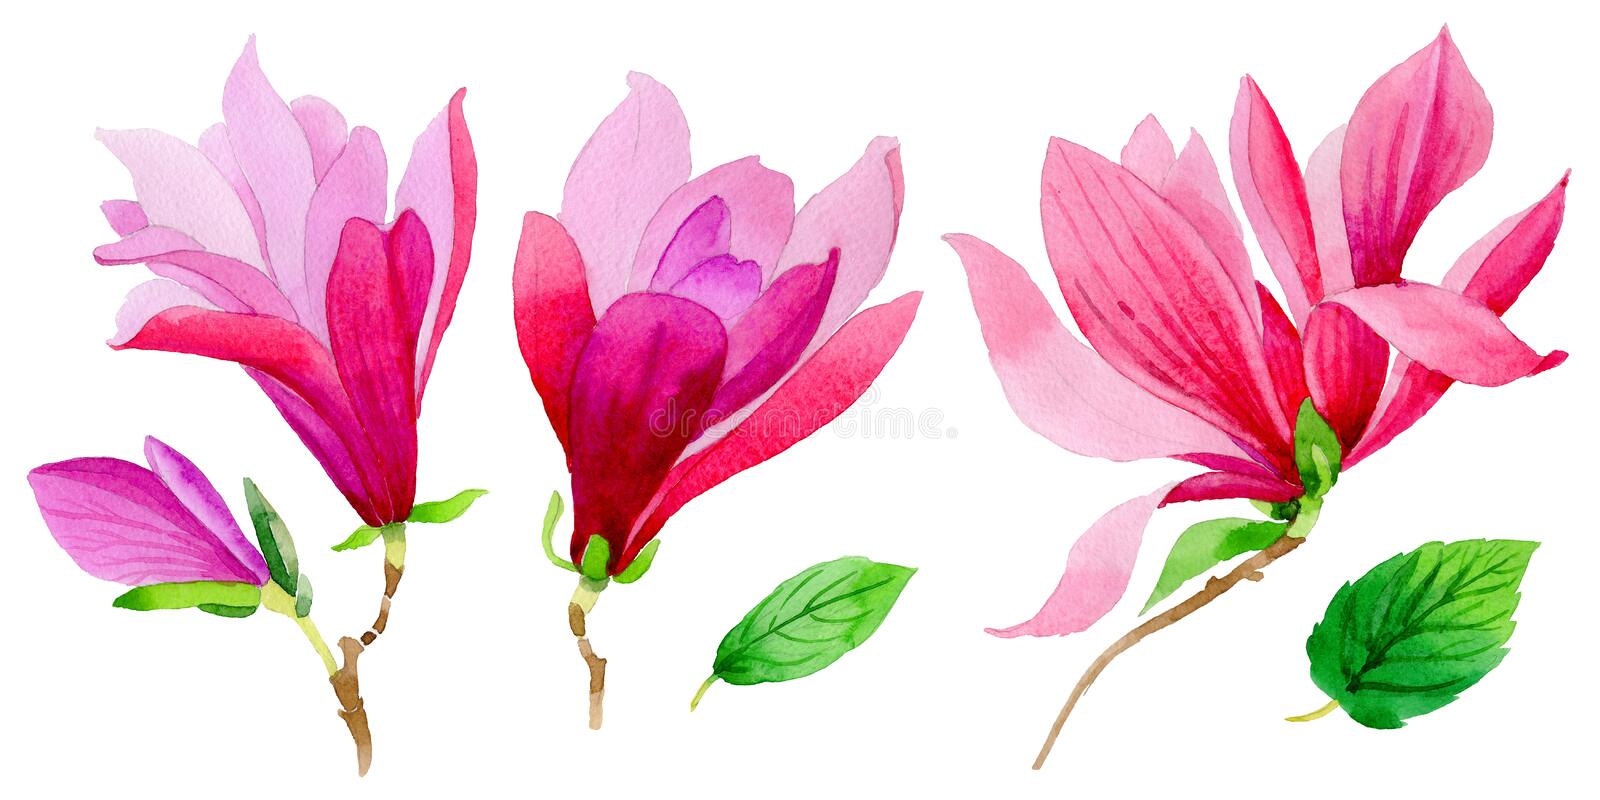 Wildflower magnolia flower in a watercolor style isolated. vector illustration